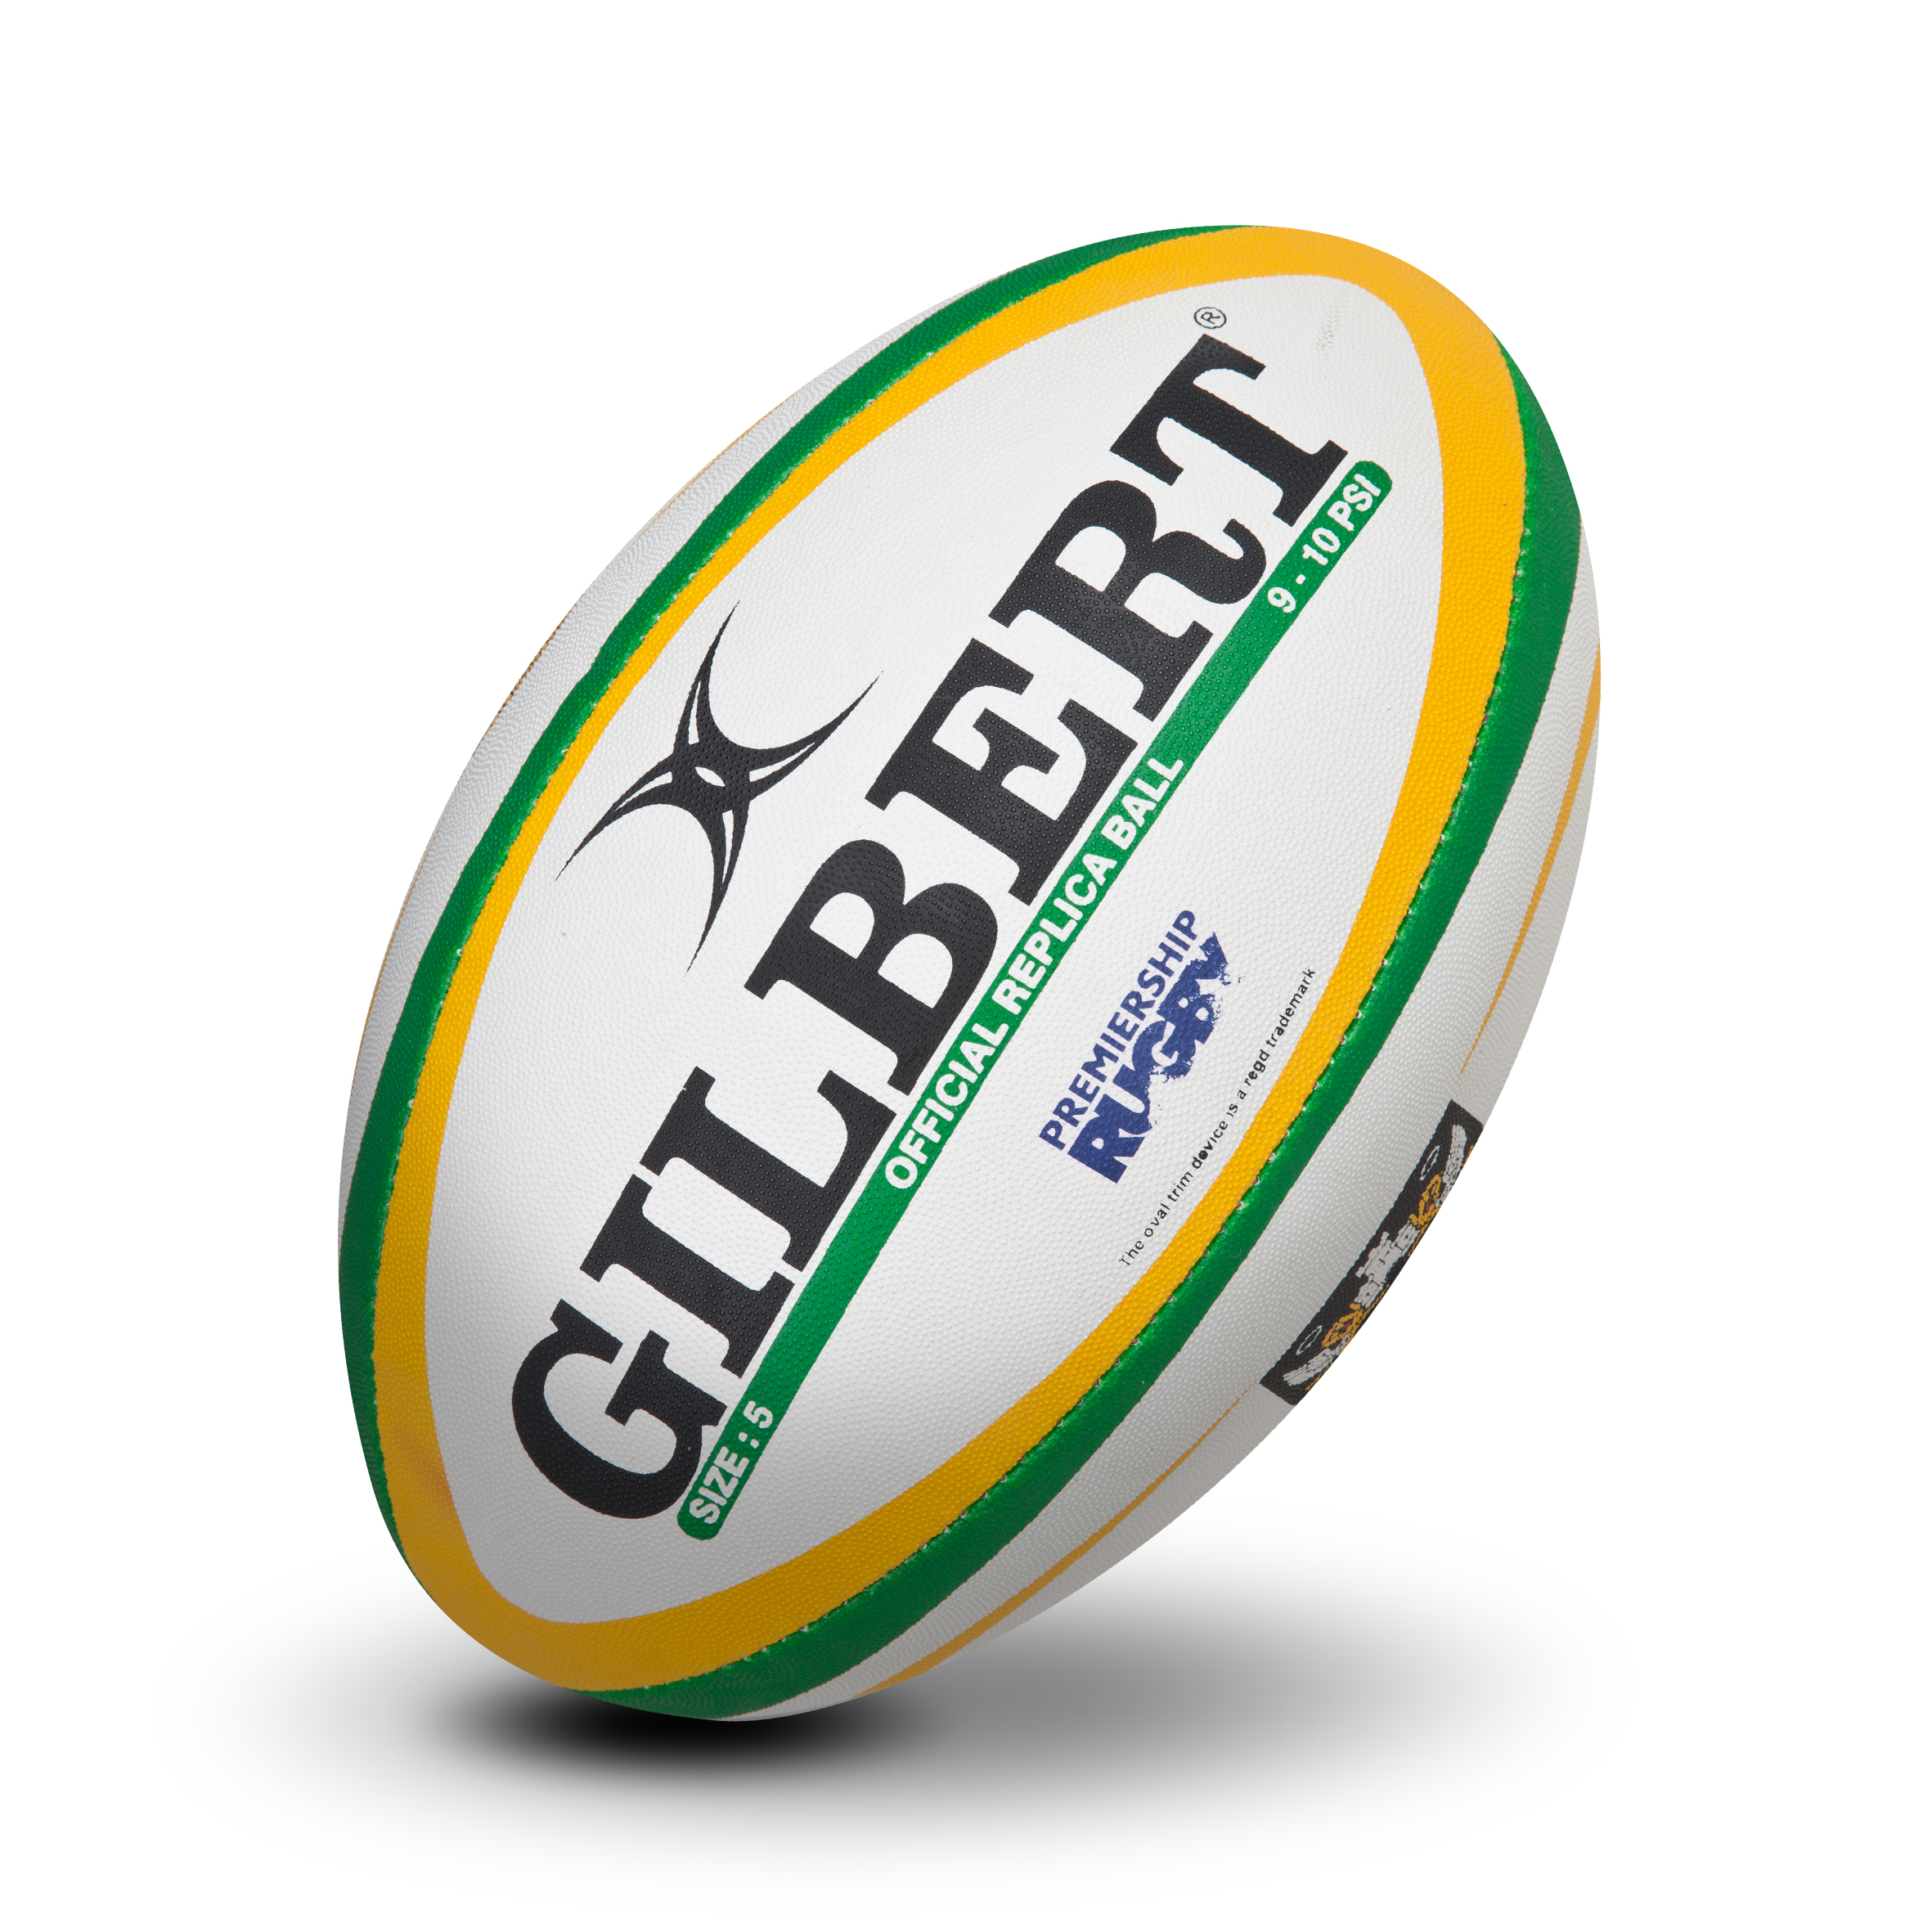 Gilbert Northampton Saints Replica Rugby Ball - Green/Navy - Size 5 - White/Green/Yellow